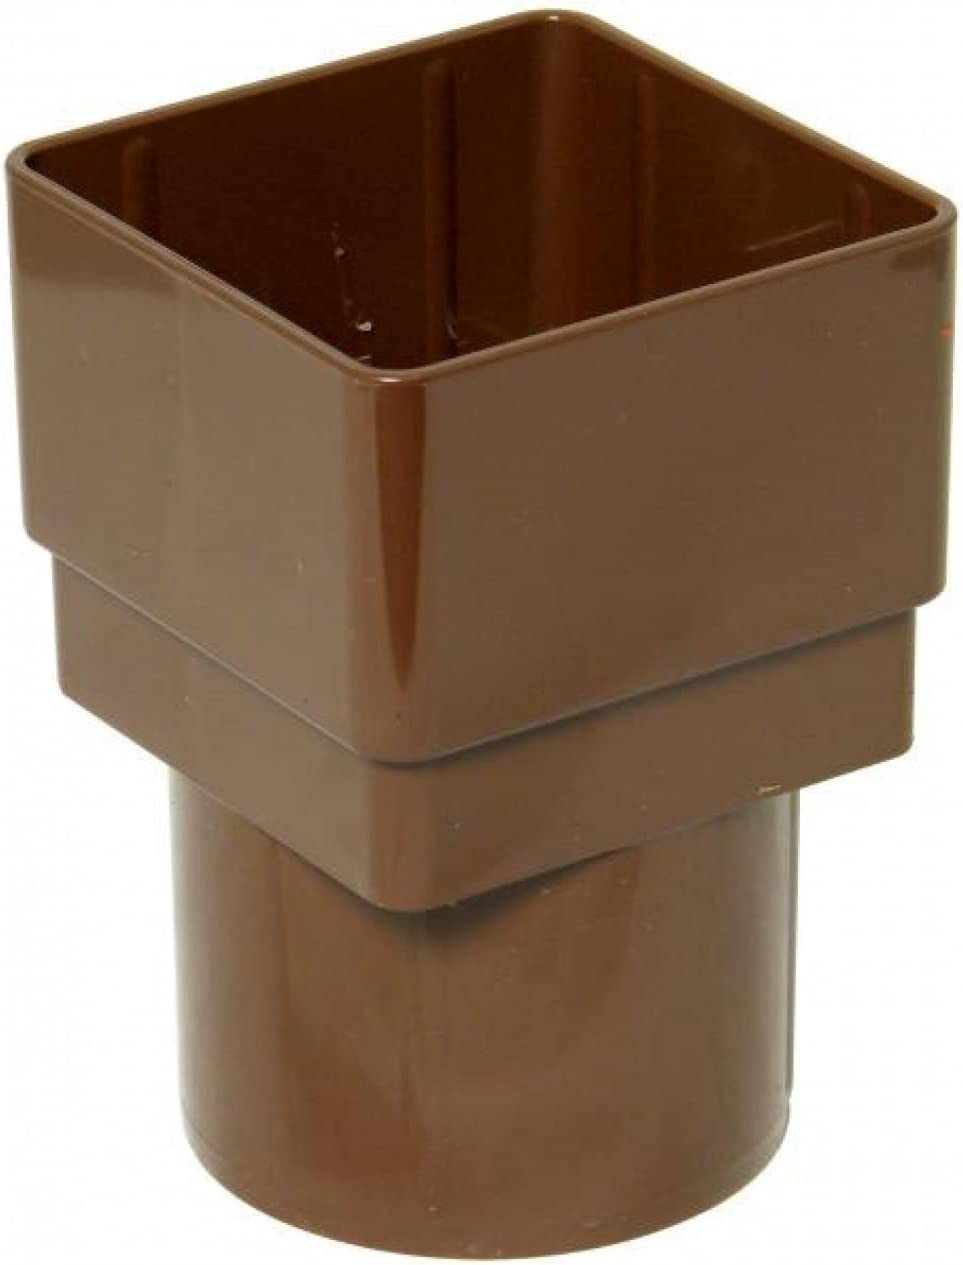 FLOPLAST 65mm Square to 68mm Round Downpipe Adapter Pack of 2 Brown